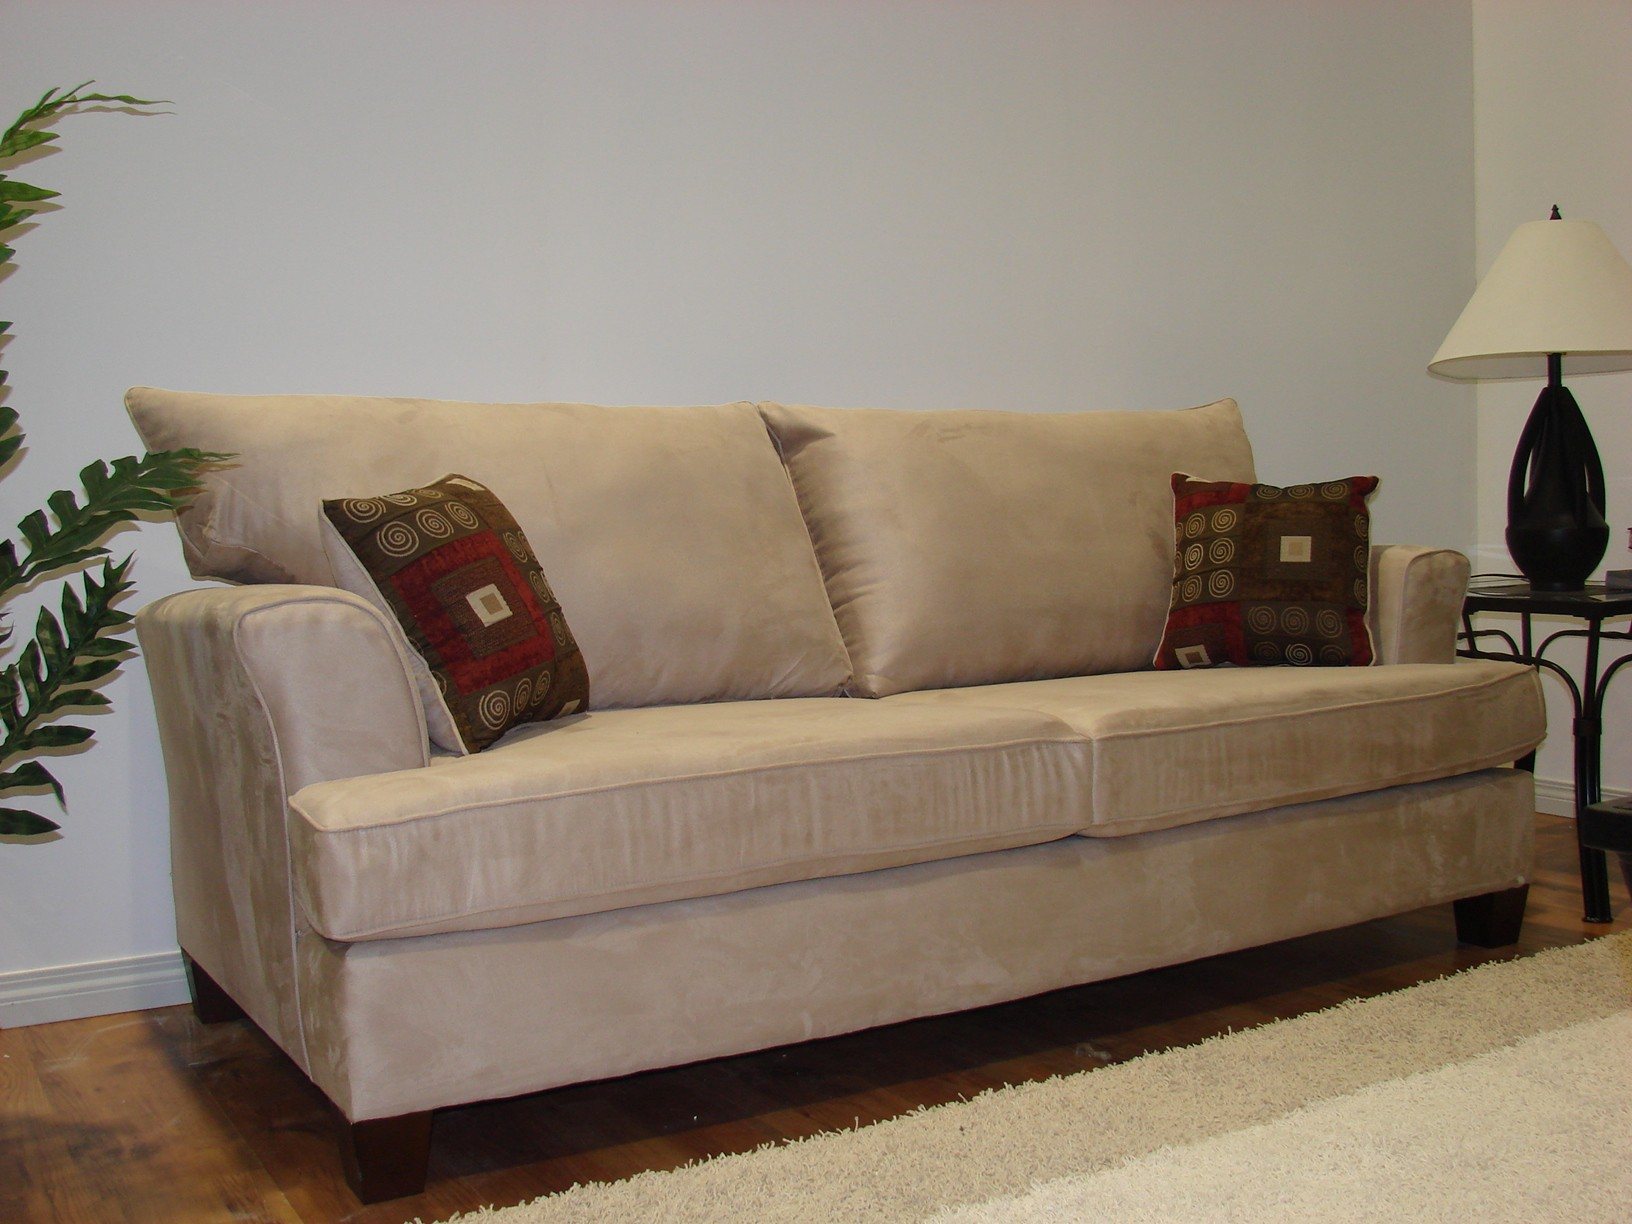 Cool Cream Colored Sofa Image Modern Sofa Design Ideas Modern